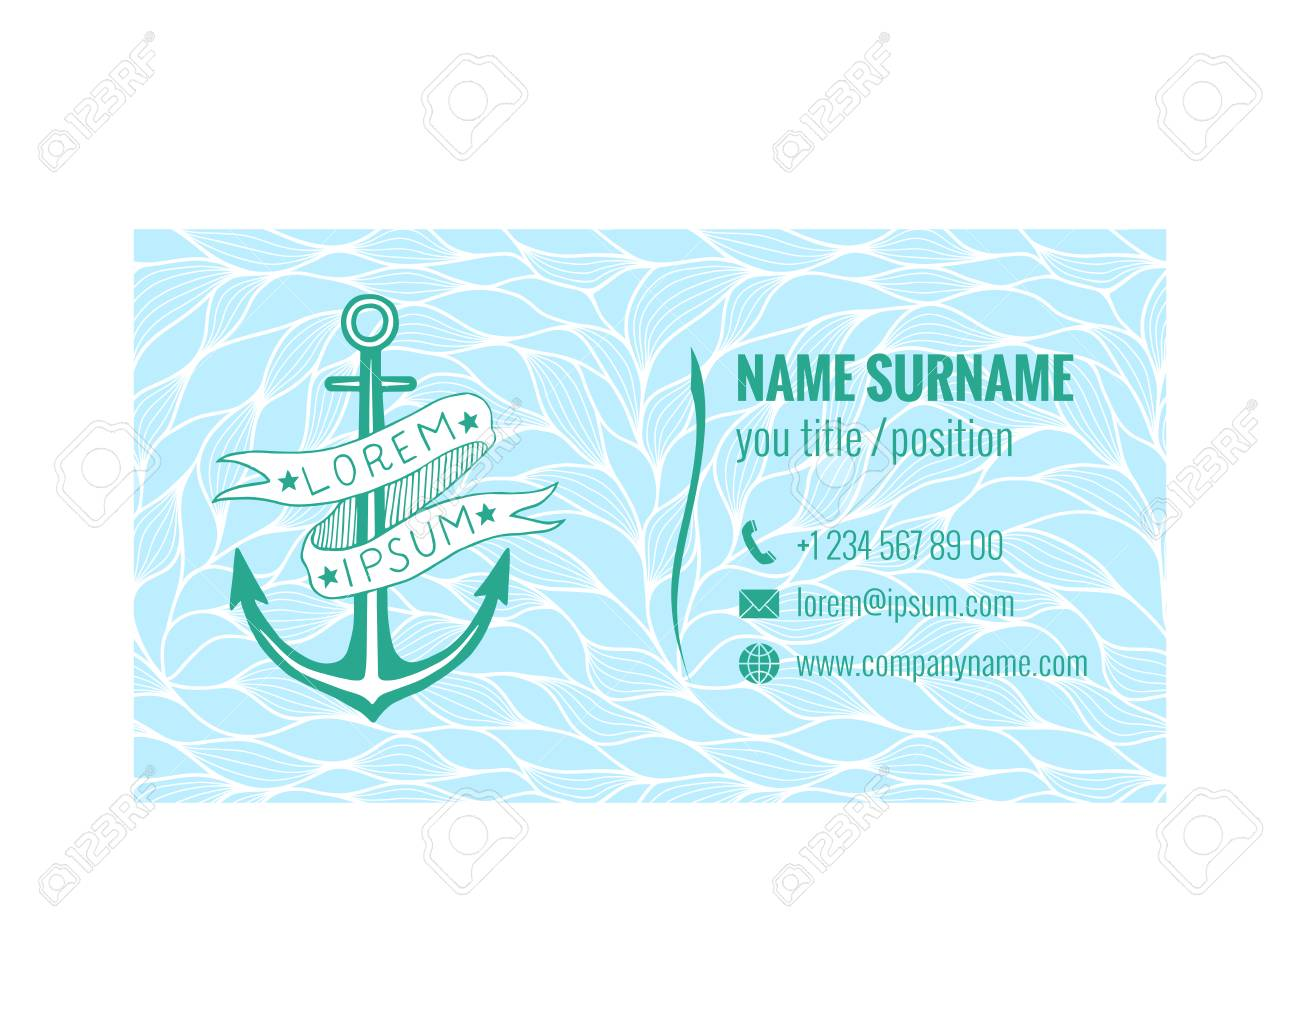 Business Card Template For Yacht Club, Sea Transport Or Travel ...